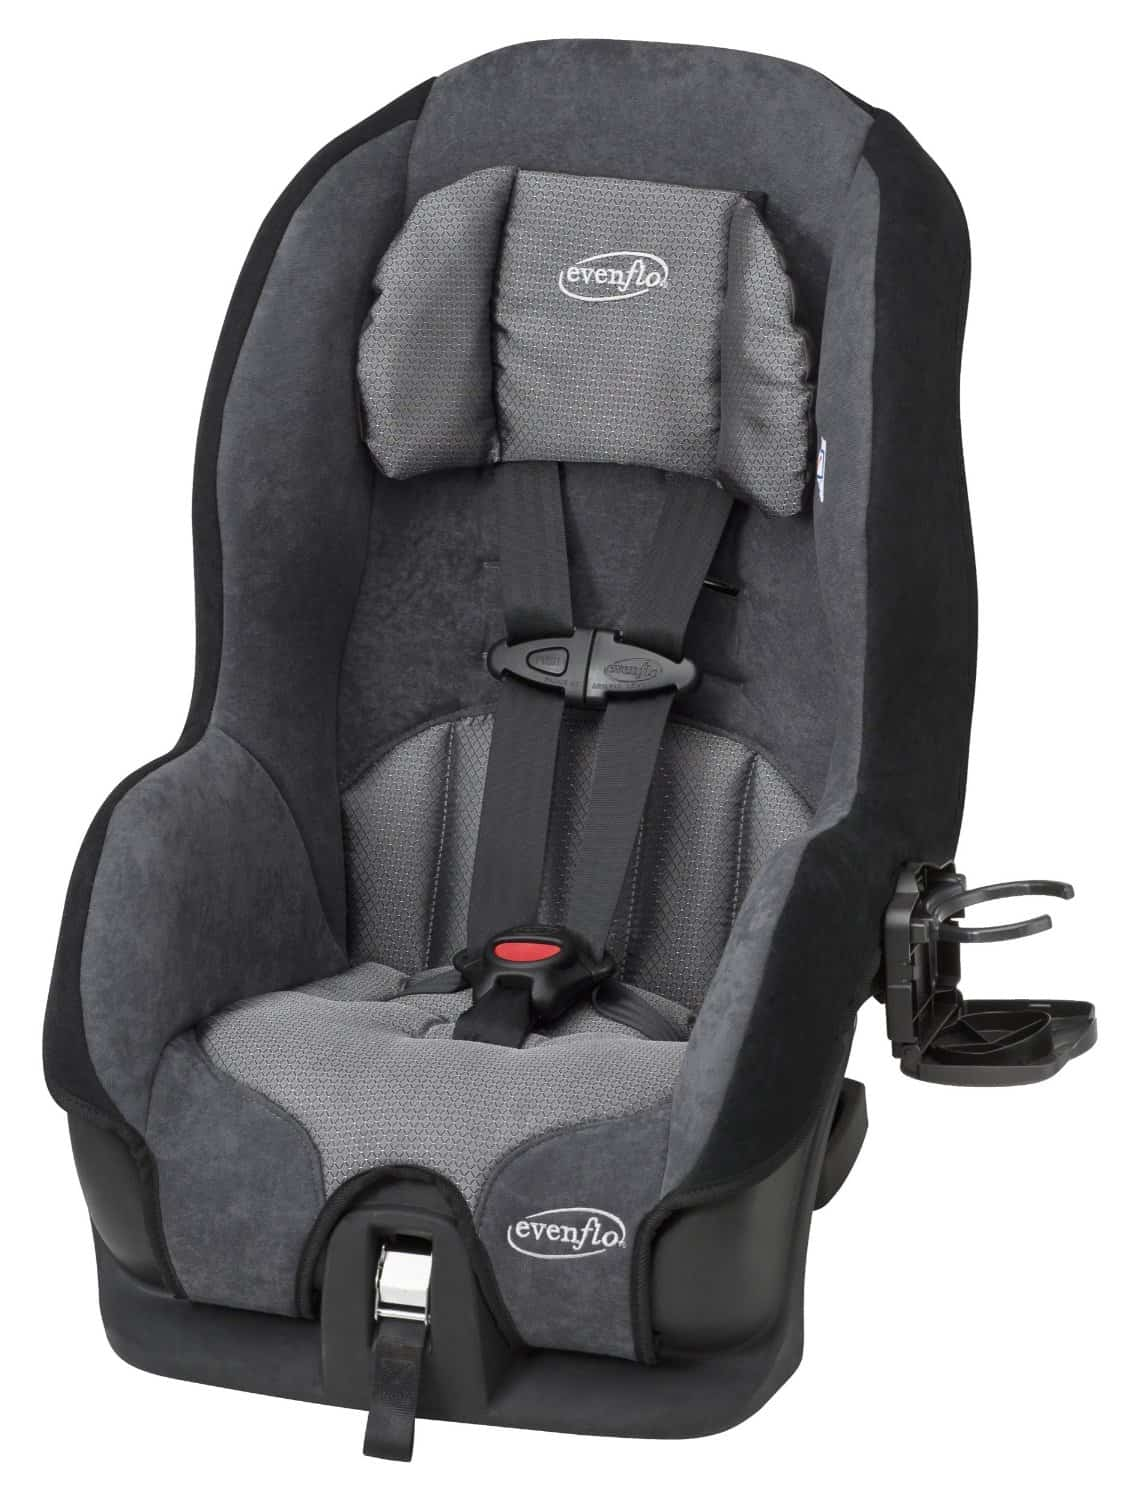 Convertible Car Seat Review: Evenflo Tribute